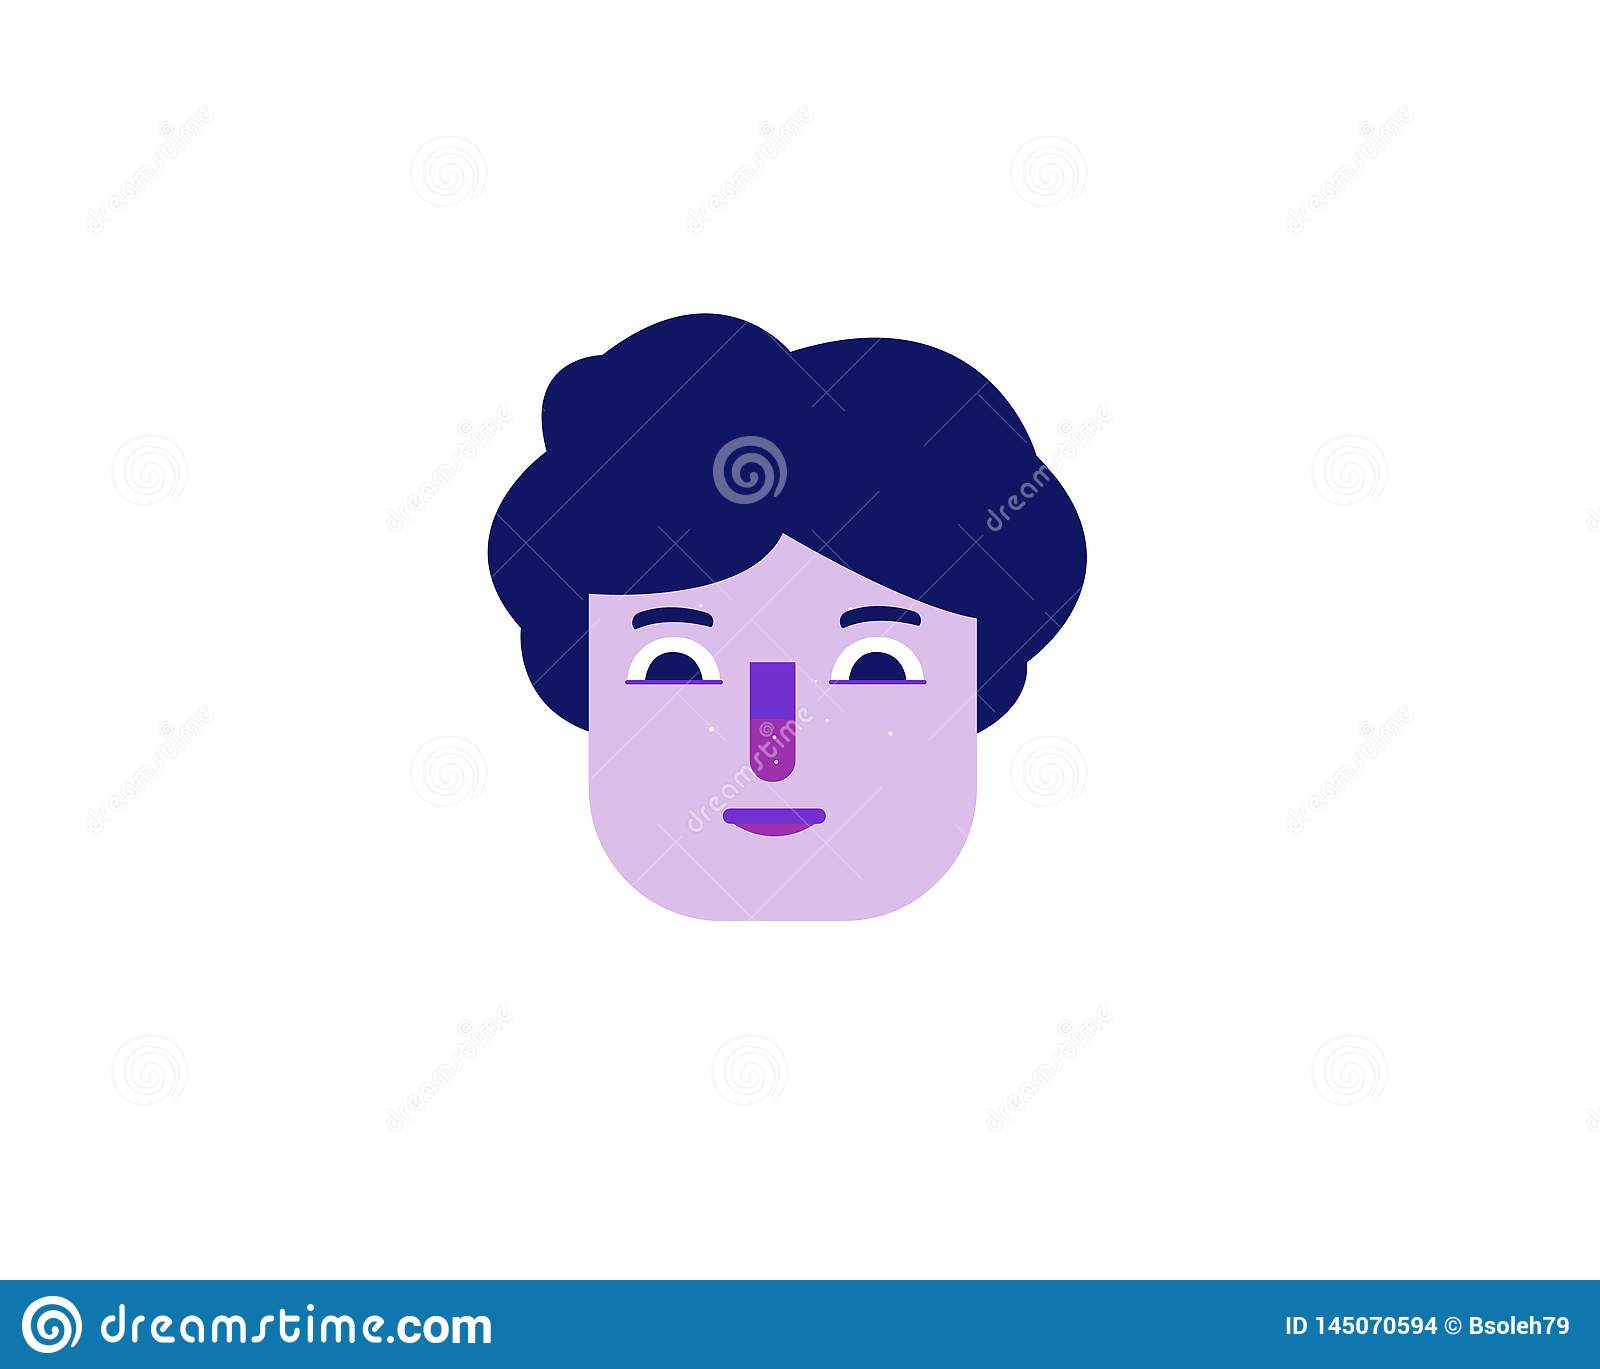 Flat illustration of a purple face of a man